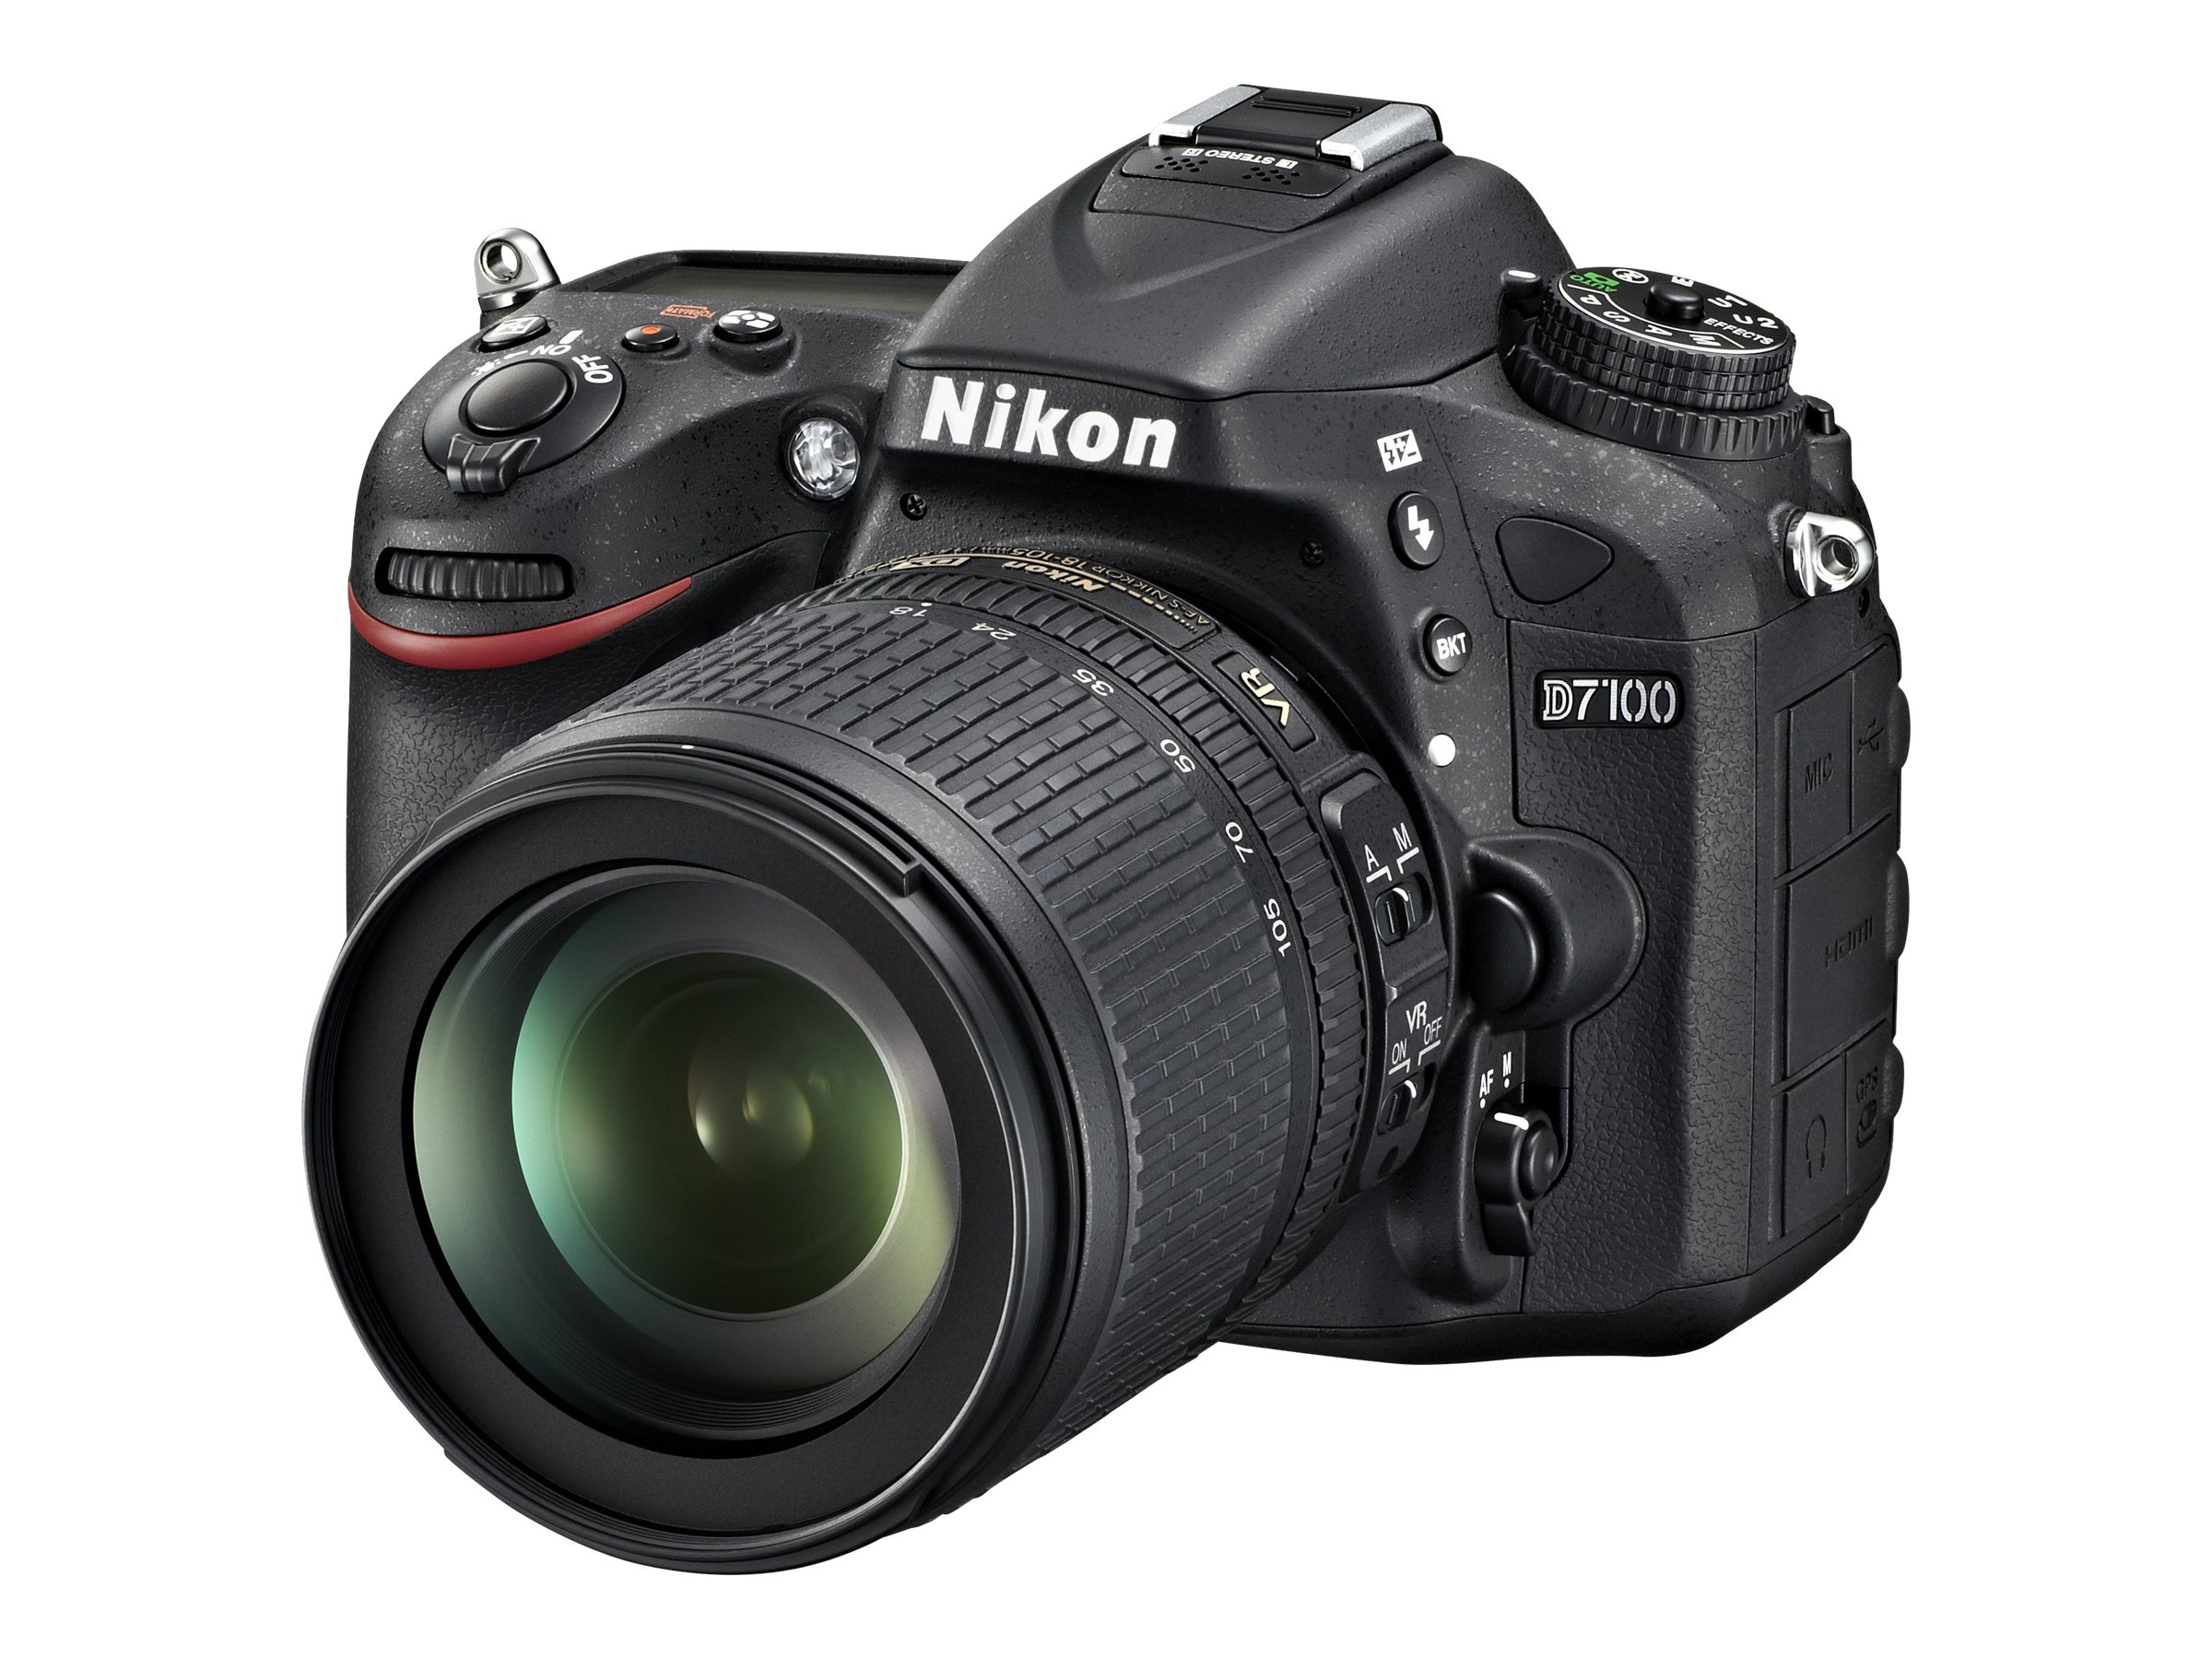 Nikon D7100 DSLR Camera Kit w  18-105mm f 3.5-5.6G ED VR DX Lens, Battery & Charger